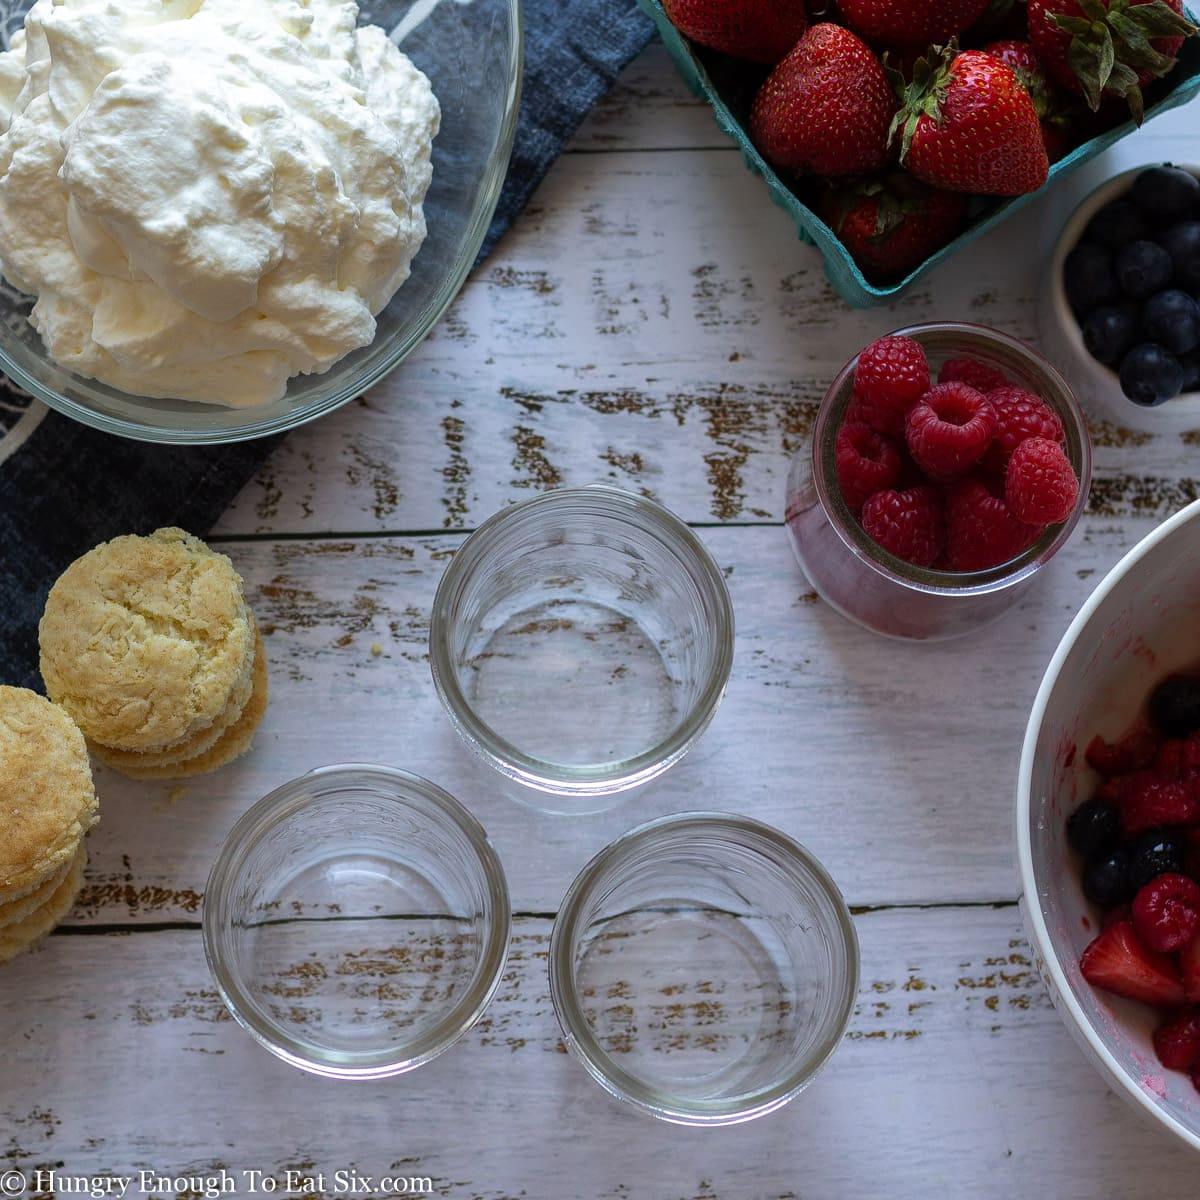 Ingredients for trifles including raspberries, whipped cream. shortcake and jars.